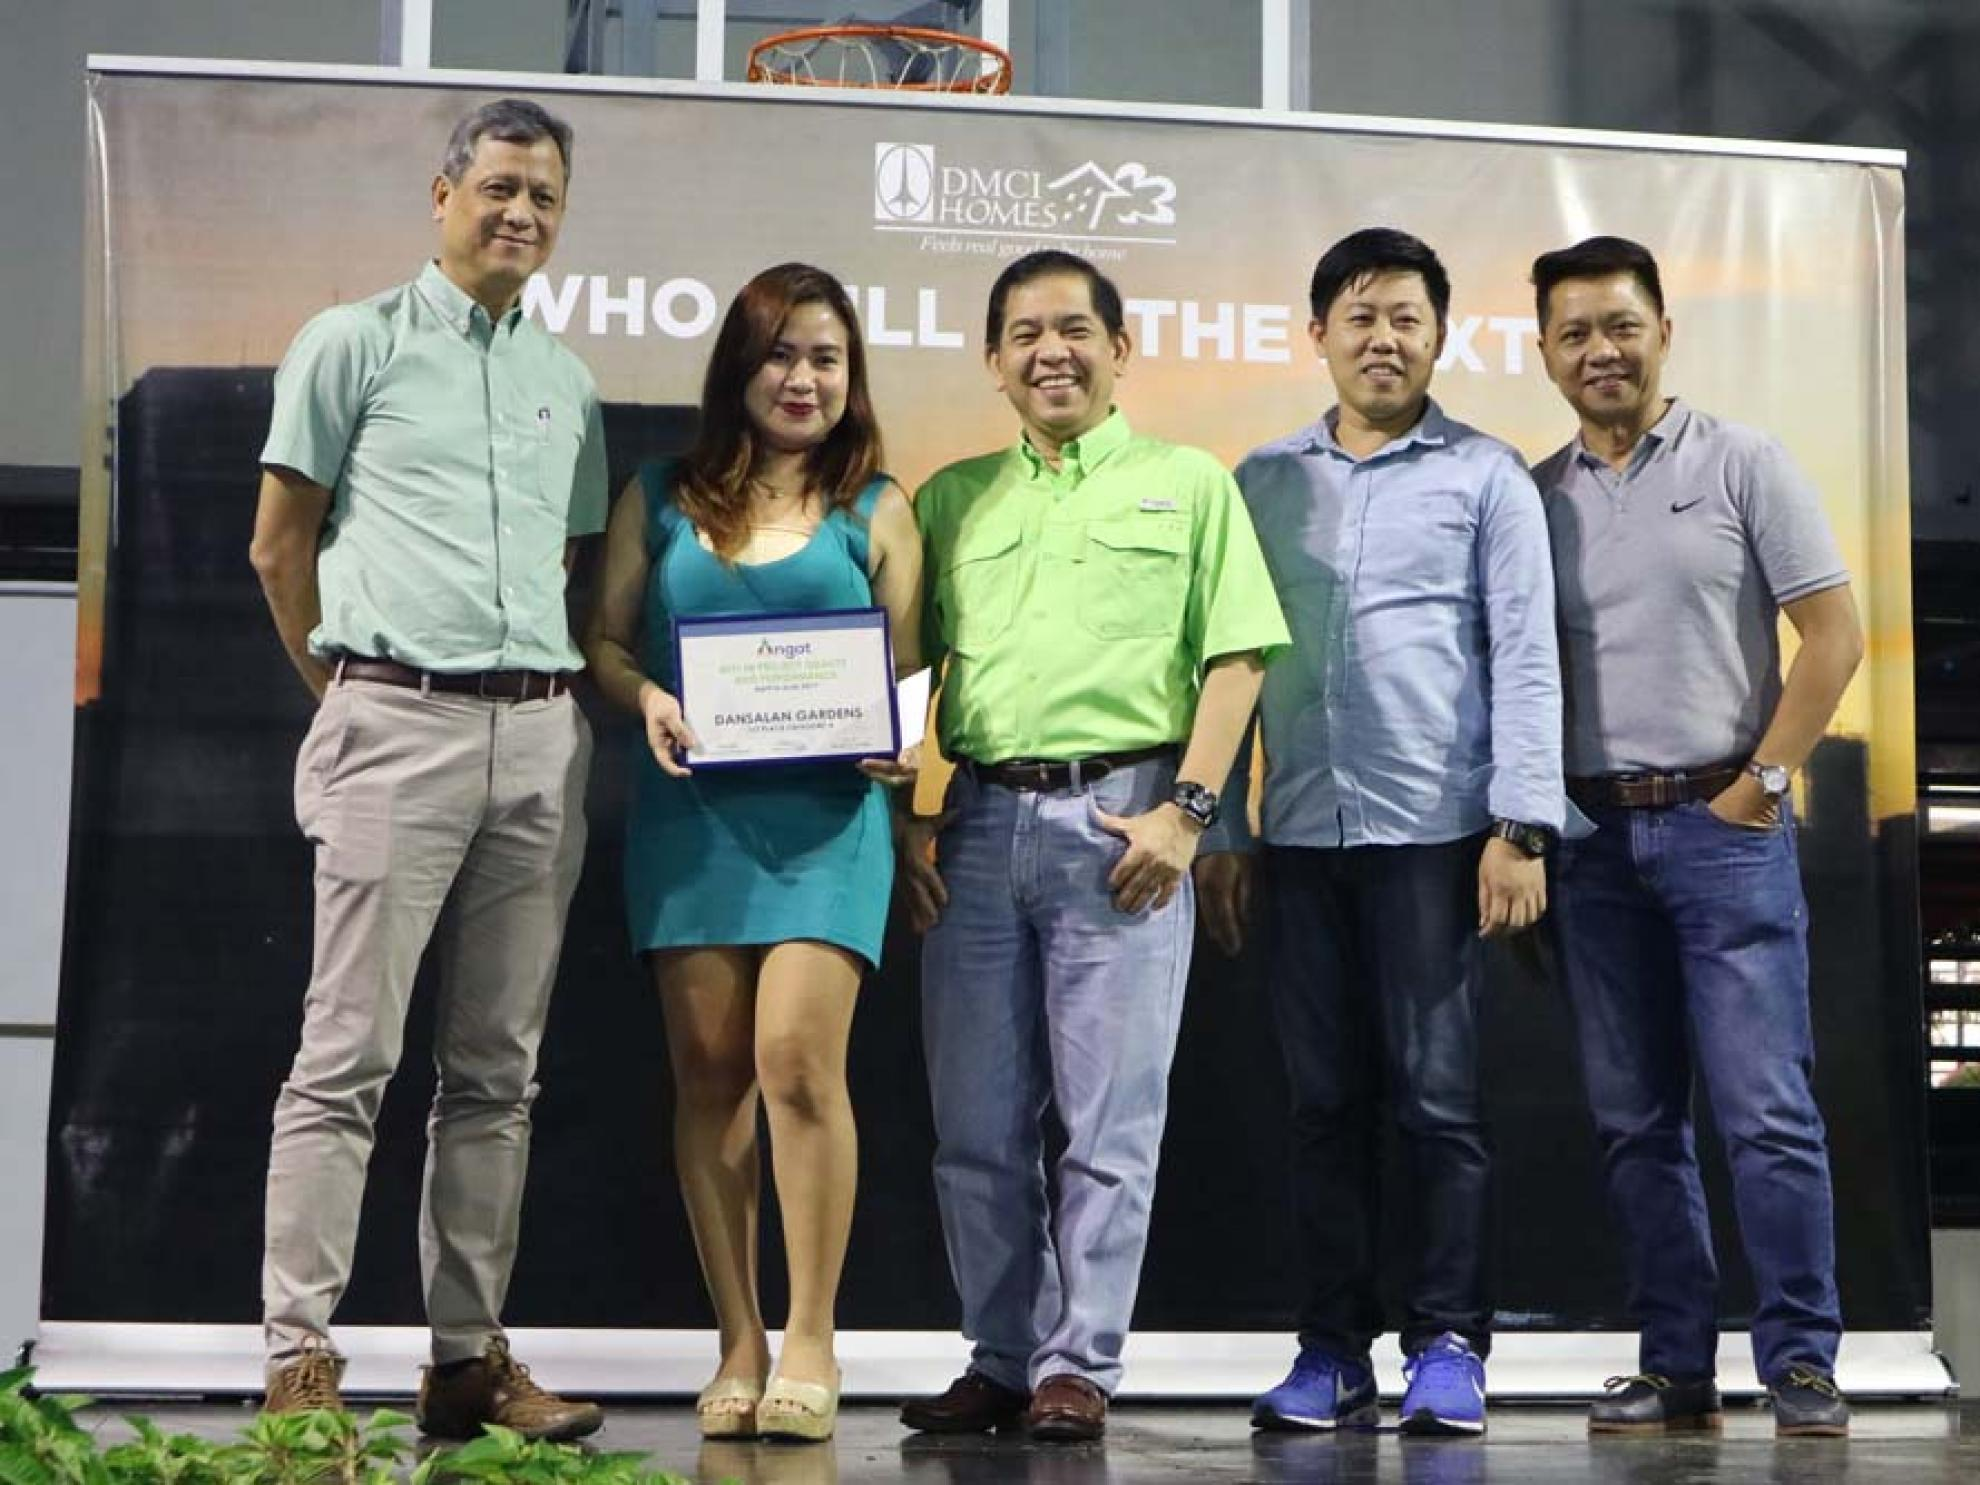 Latest Quality campaign awardees, board passers honored